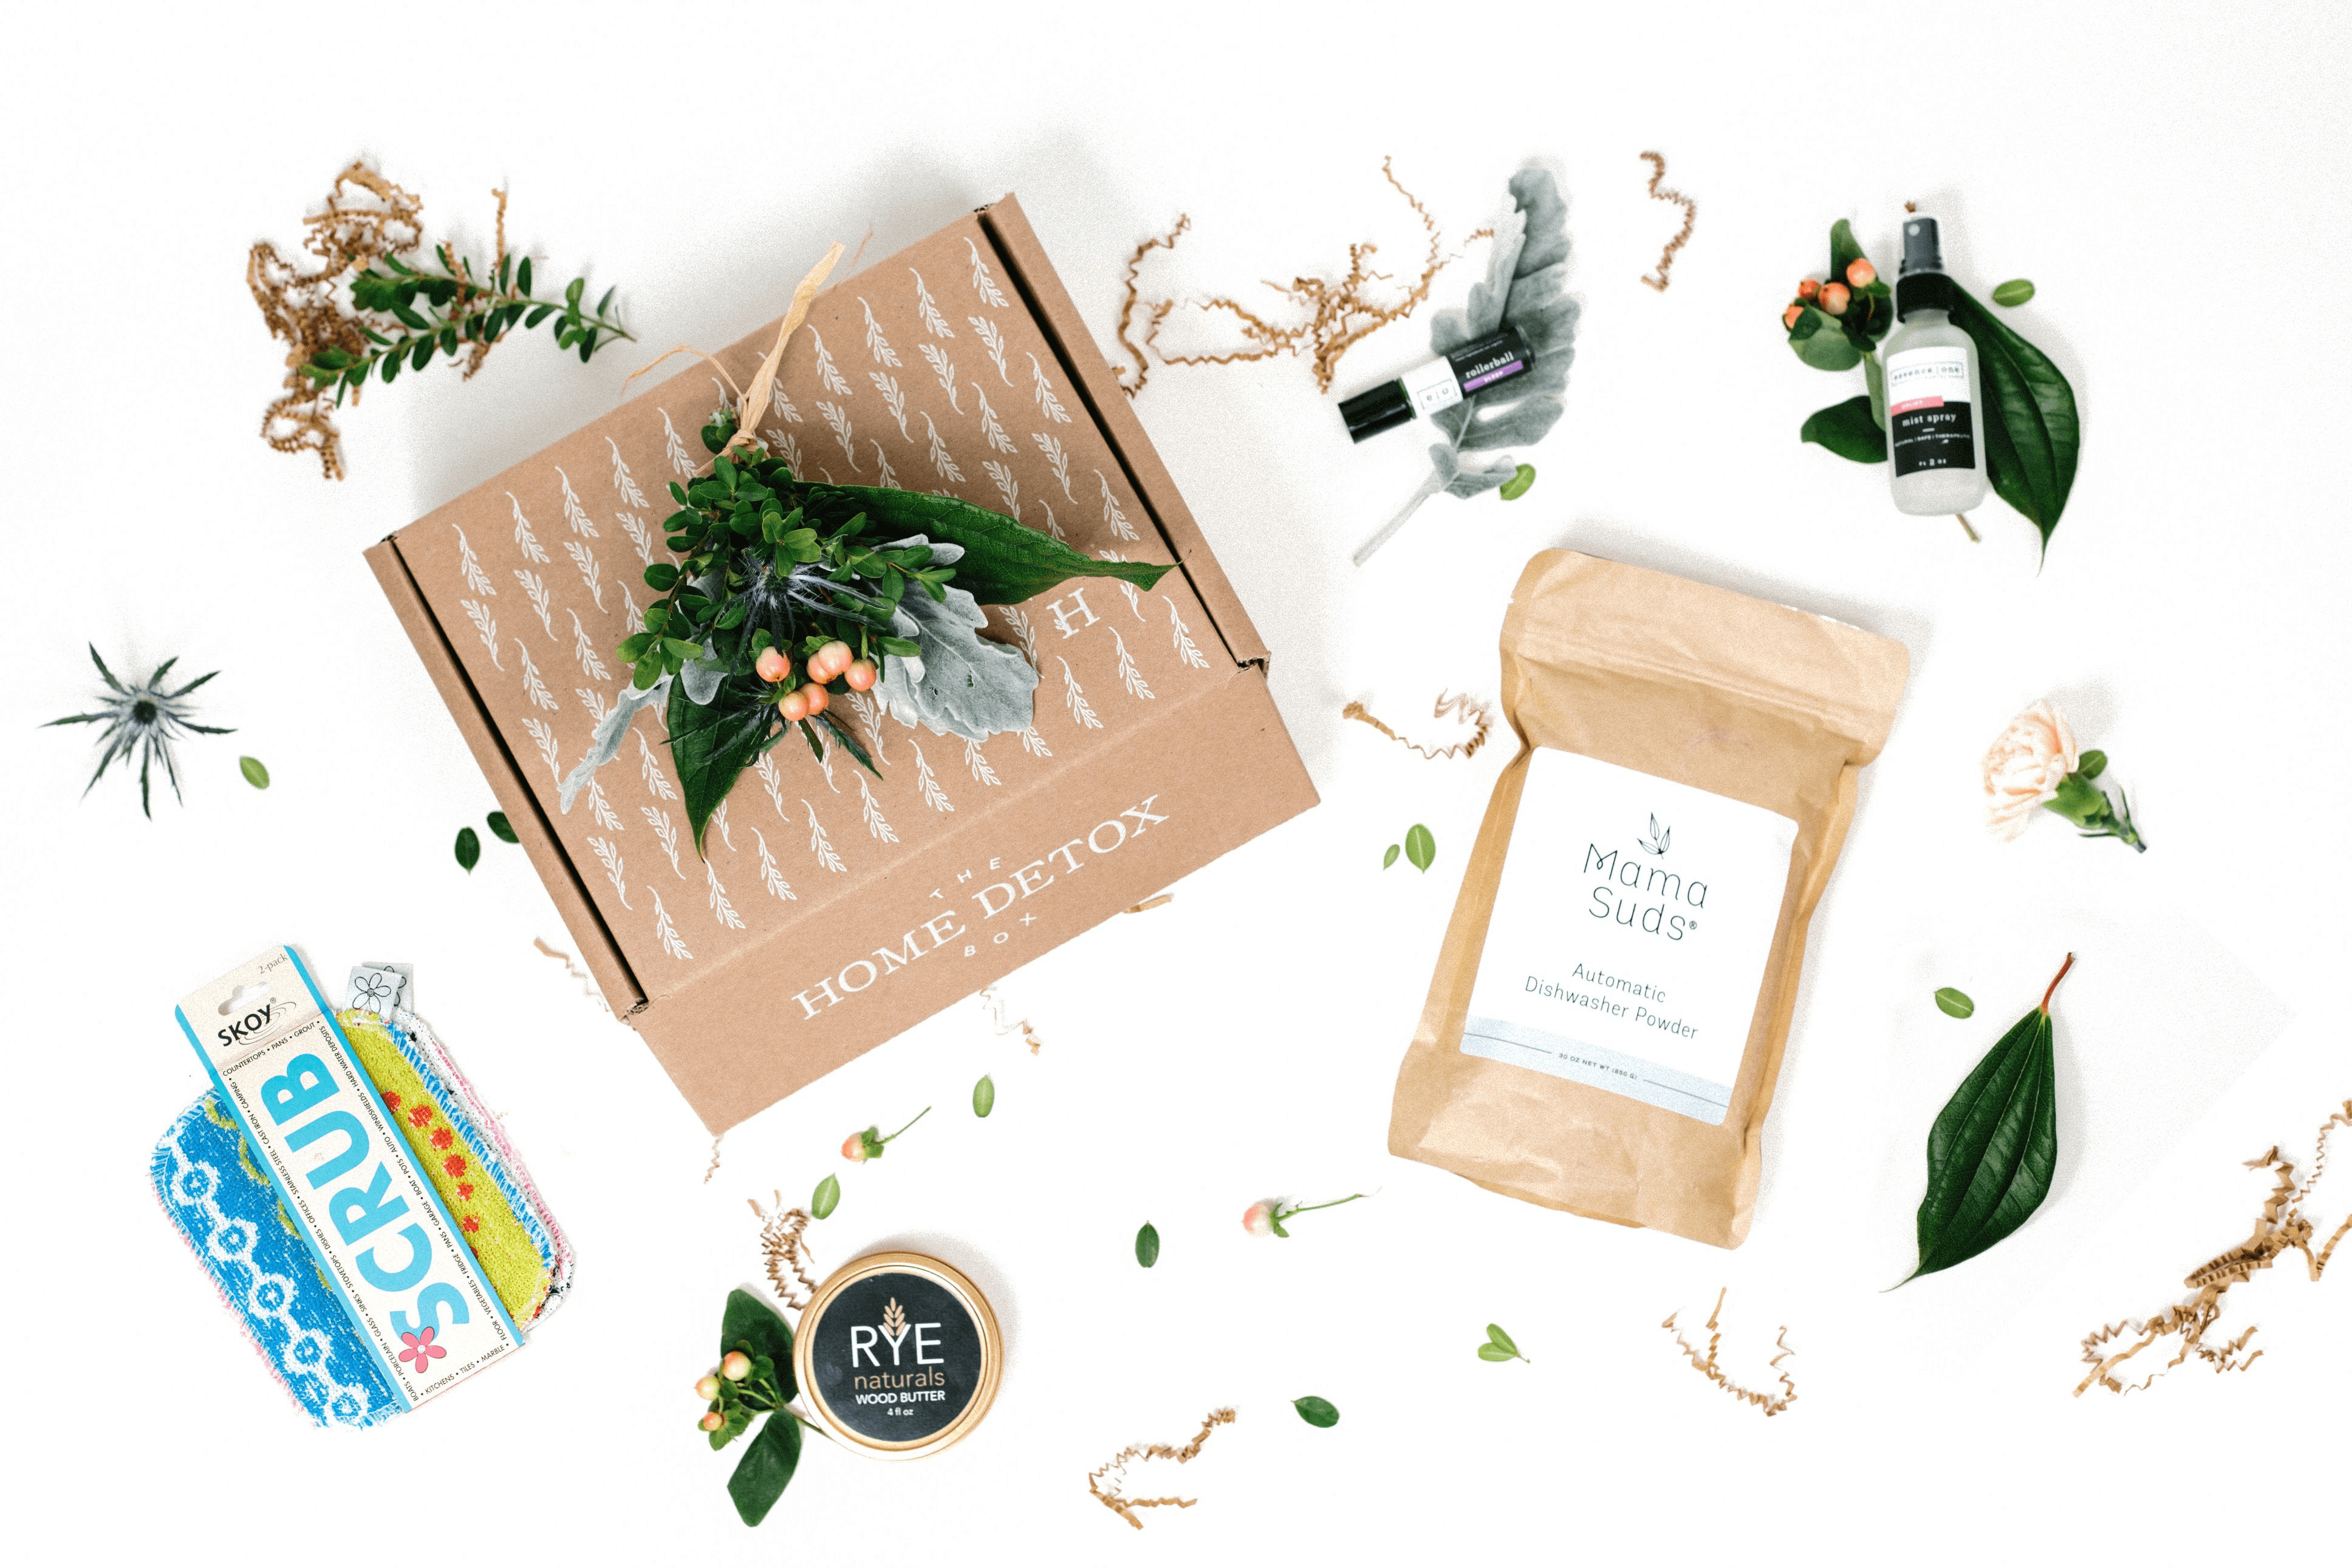 The Home Detox Box Coupon: Take 15% off your first box!